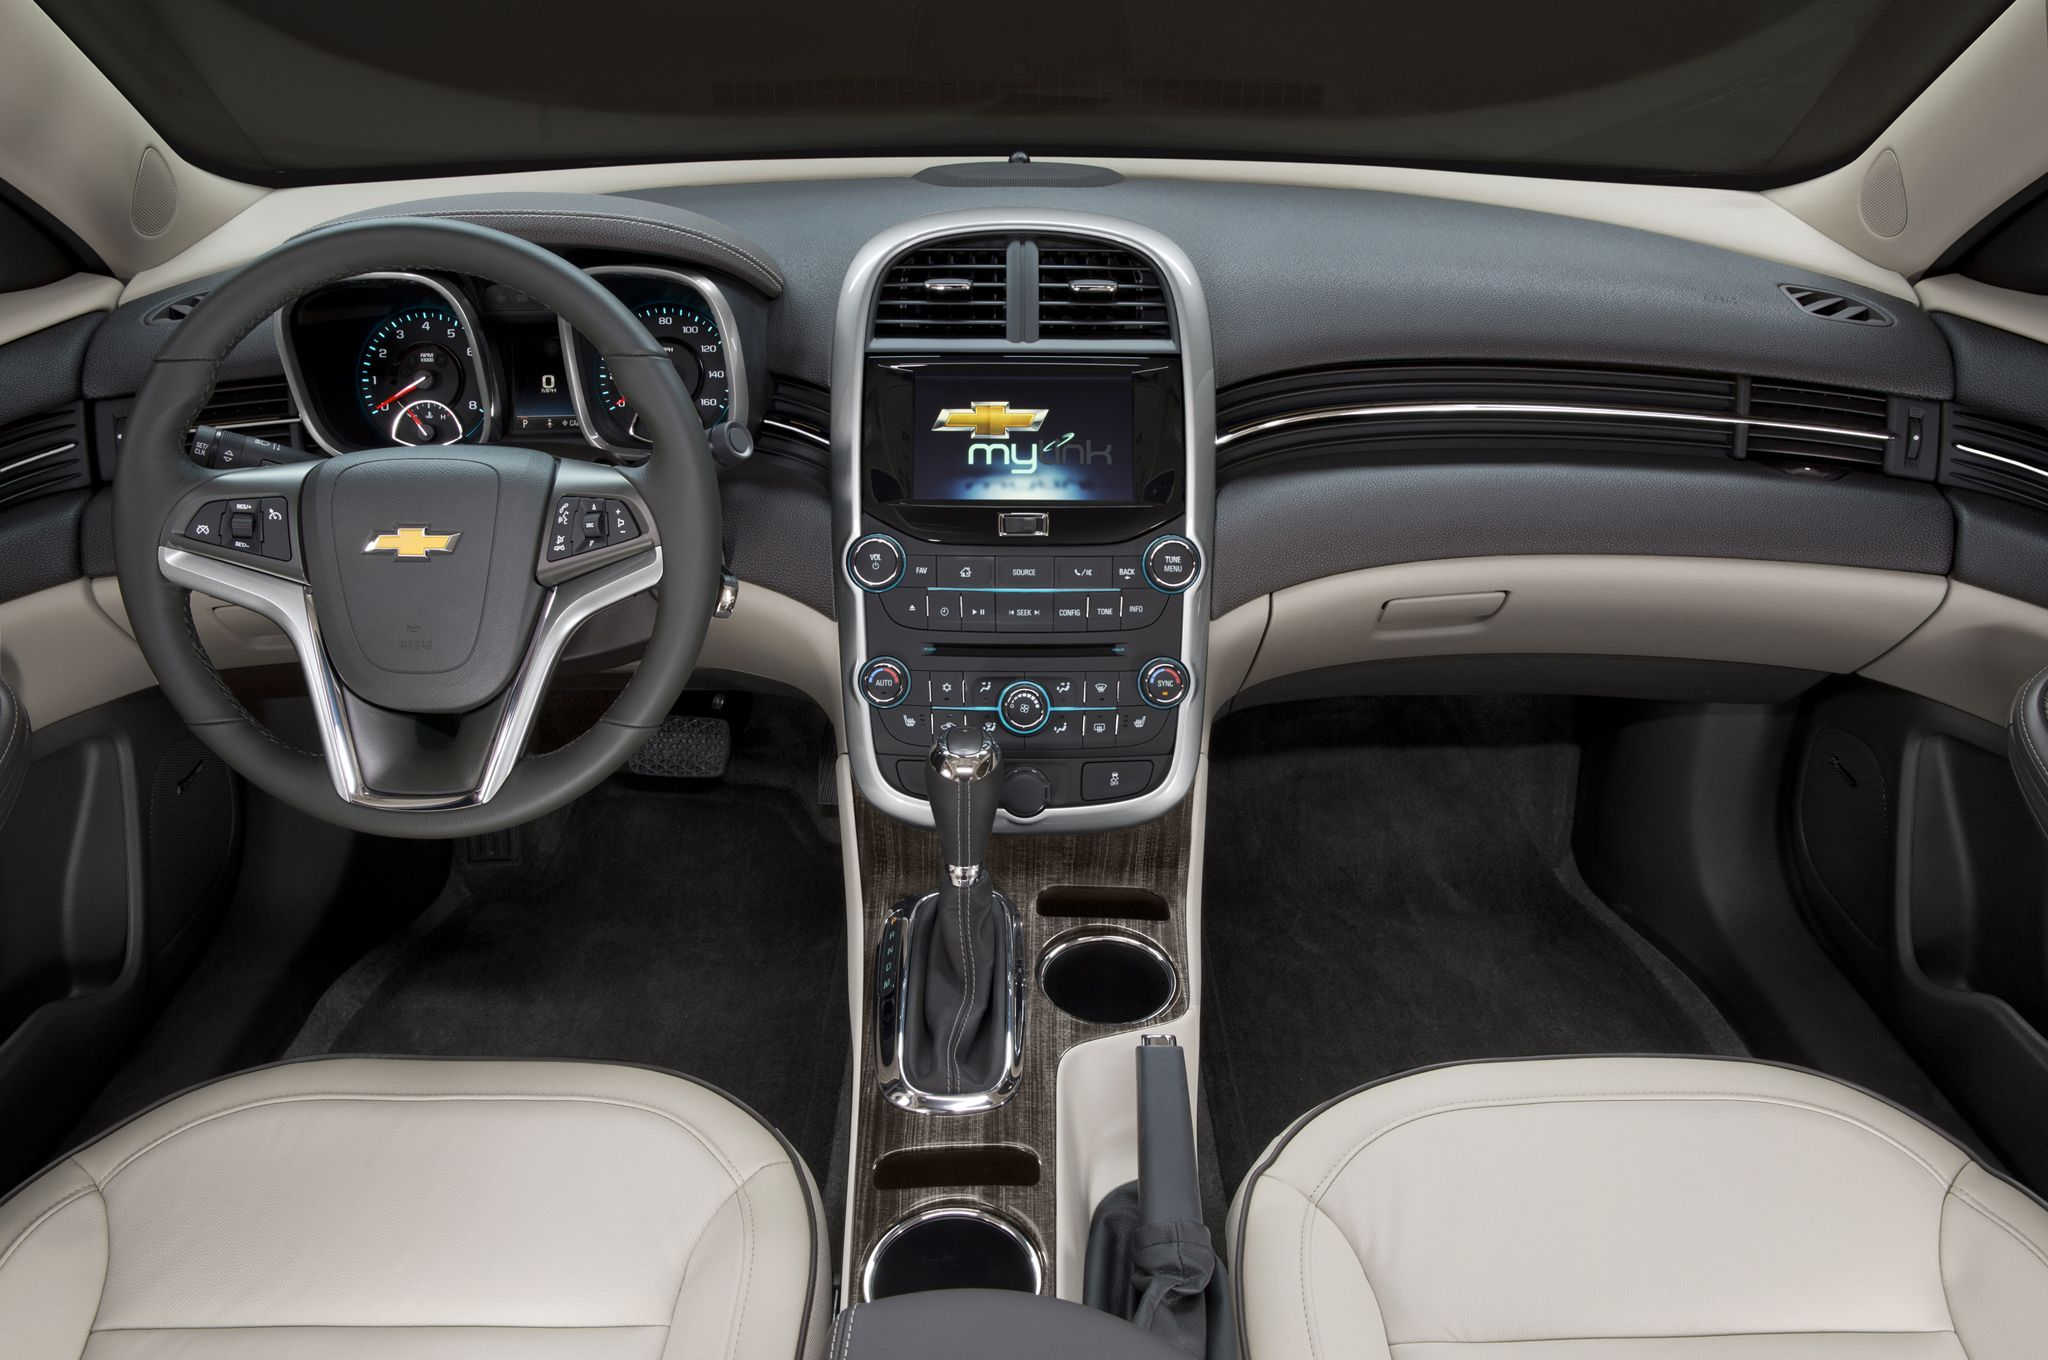 Leather Interior Styles In The 2015 Chevy Malibu | 2014 Chevrolet Malibu  Photo Gallery Amazing Design